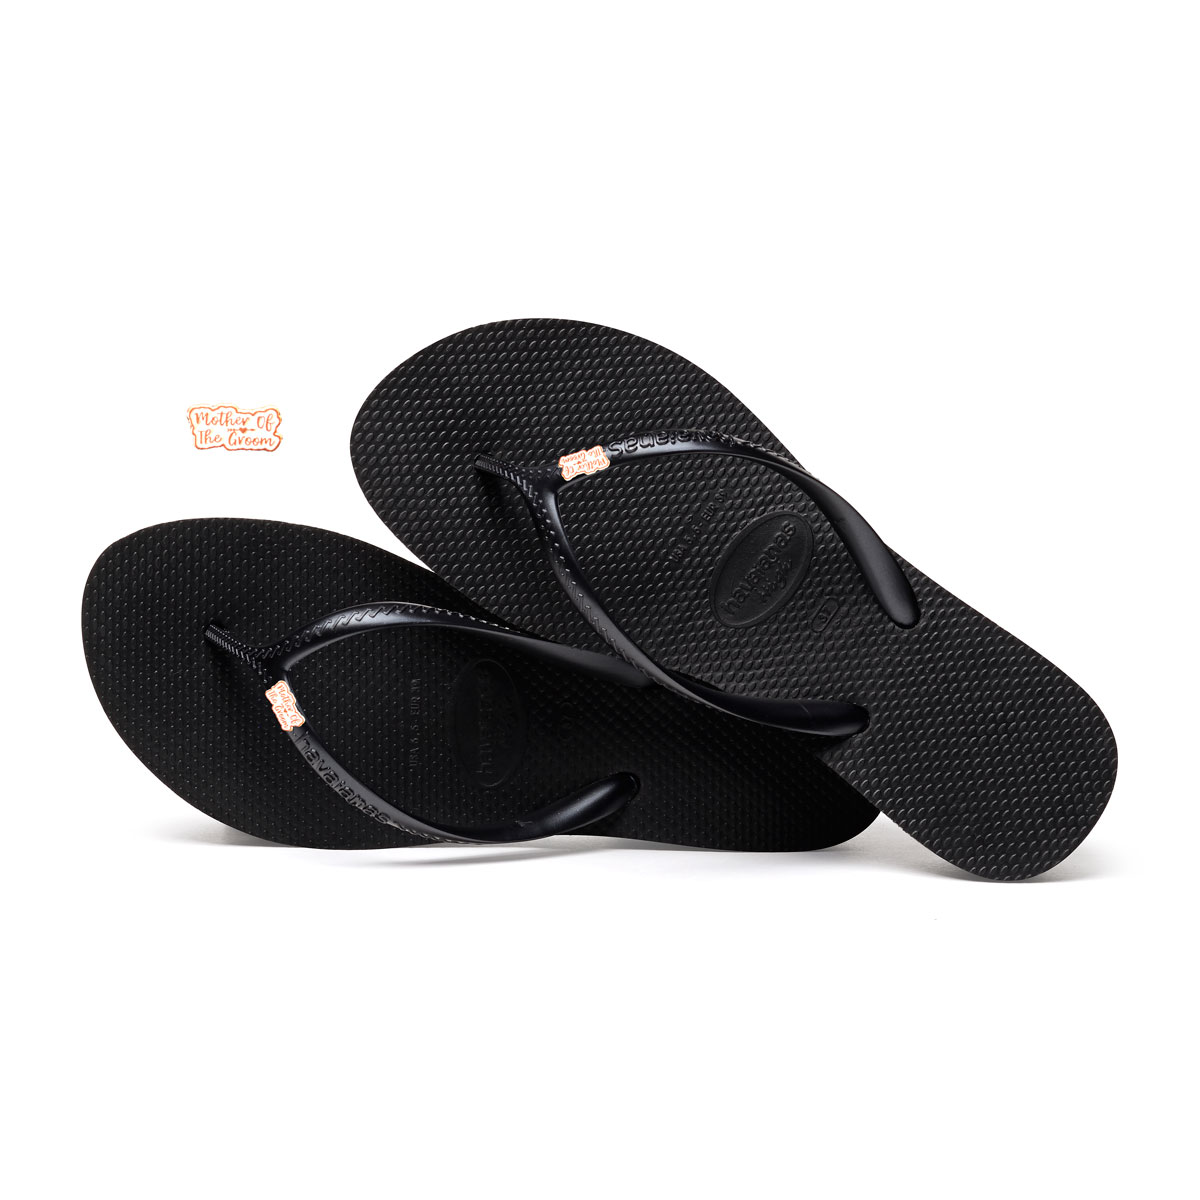 Havaianas Heel Black Flip-Flops with Rose Gold Mother of the Groom Pin